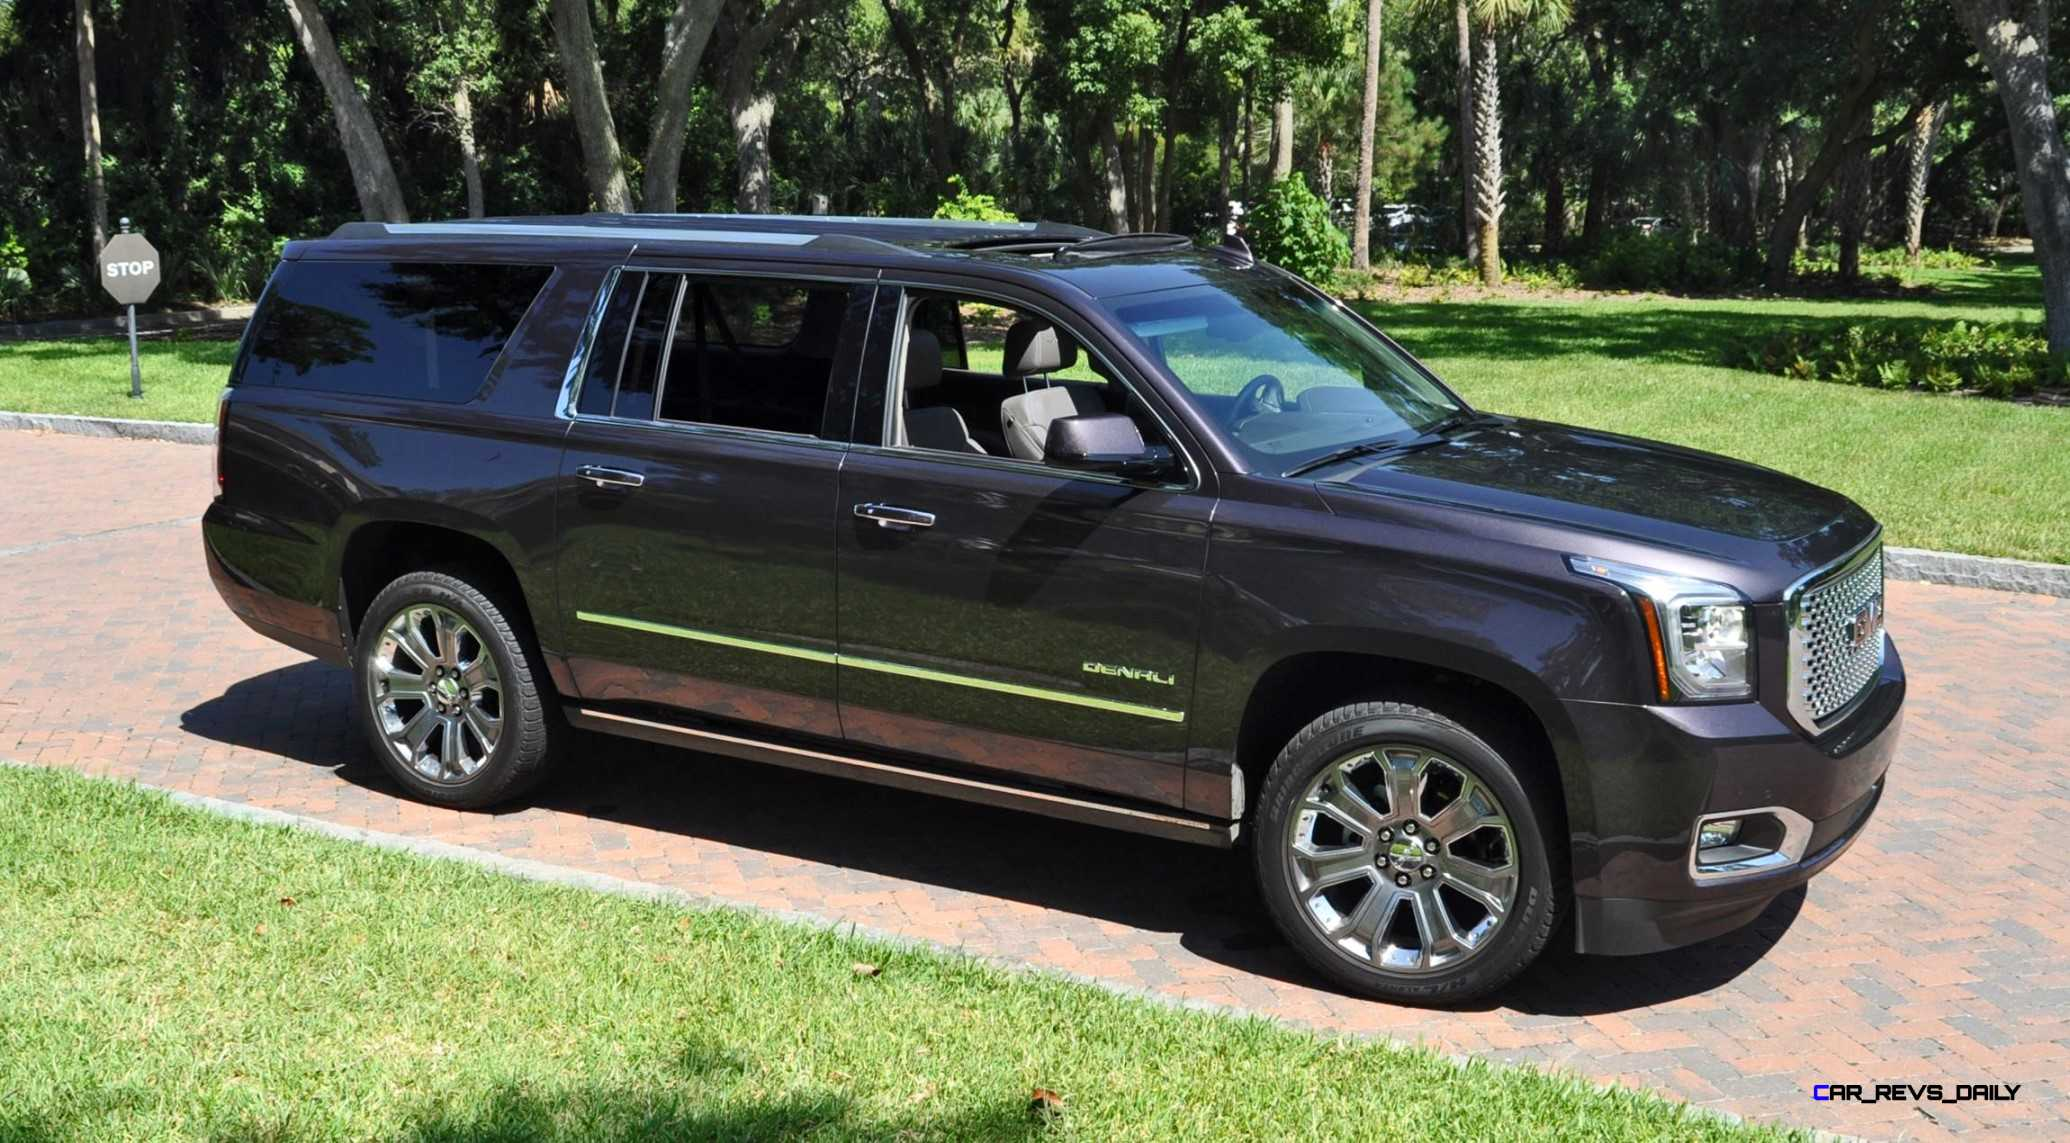 hd road test review 2015 gmc yukon denali xl 4 4 with new 8 speed. Black Bedroom Furniture Sets. Home Design Ideas